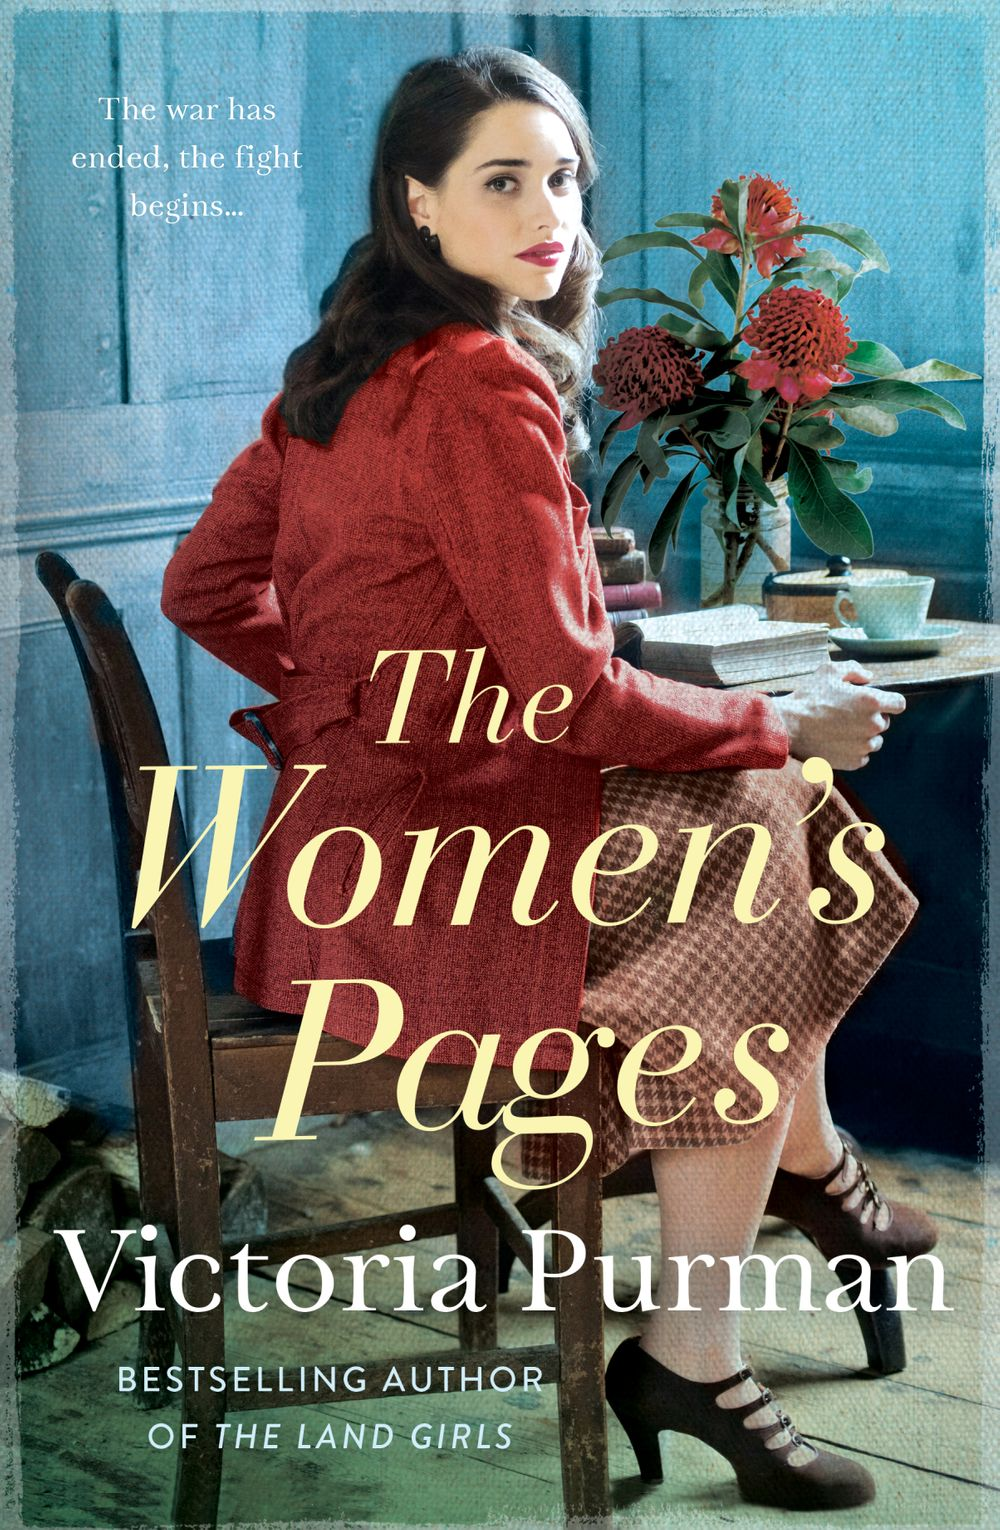 The Women's Pages